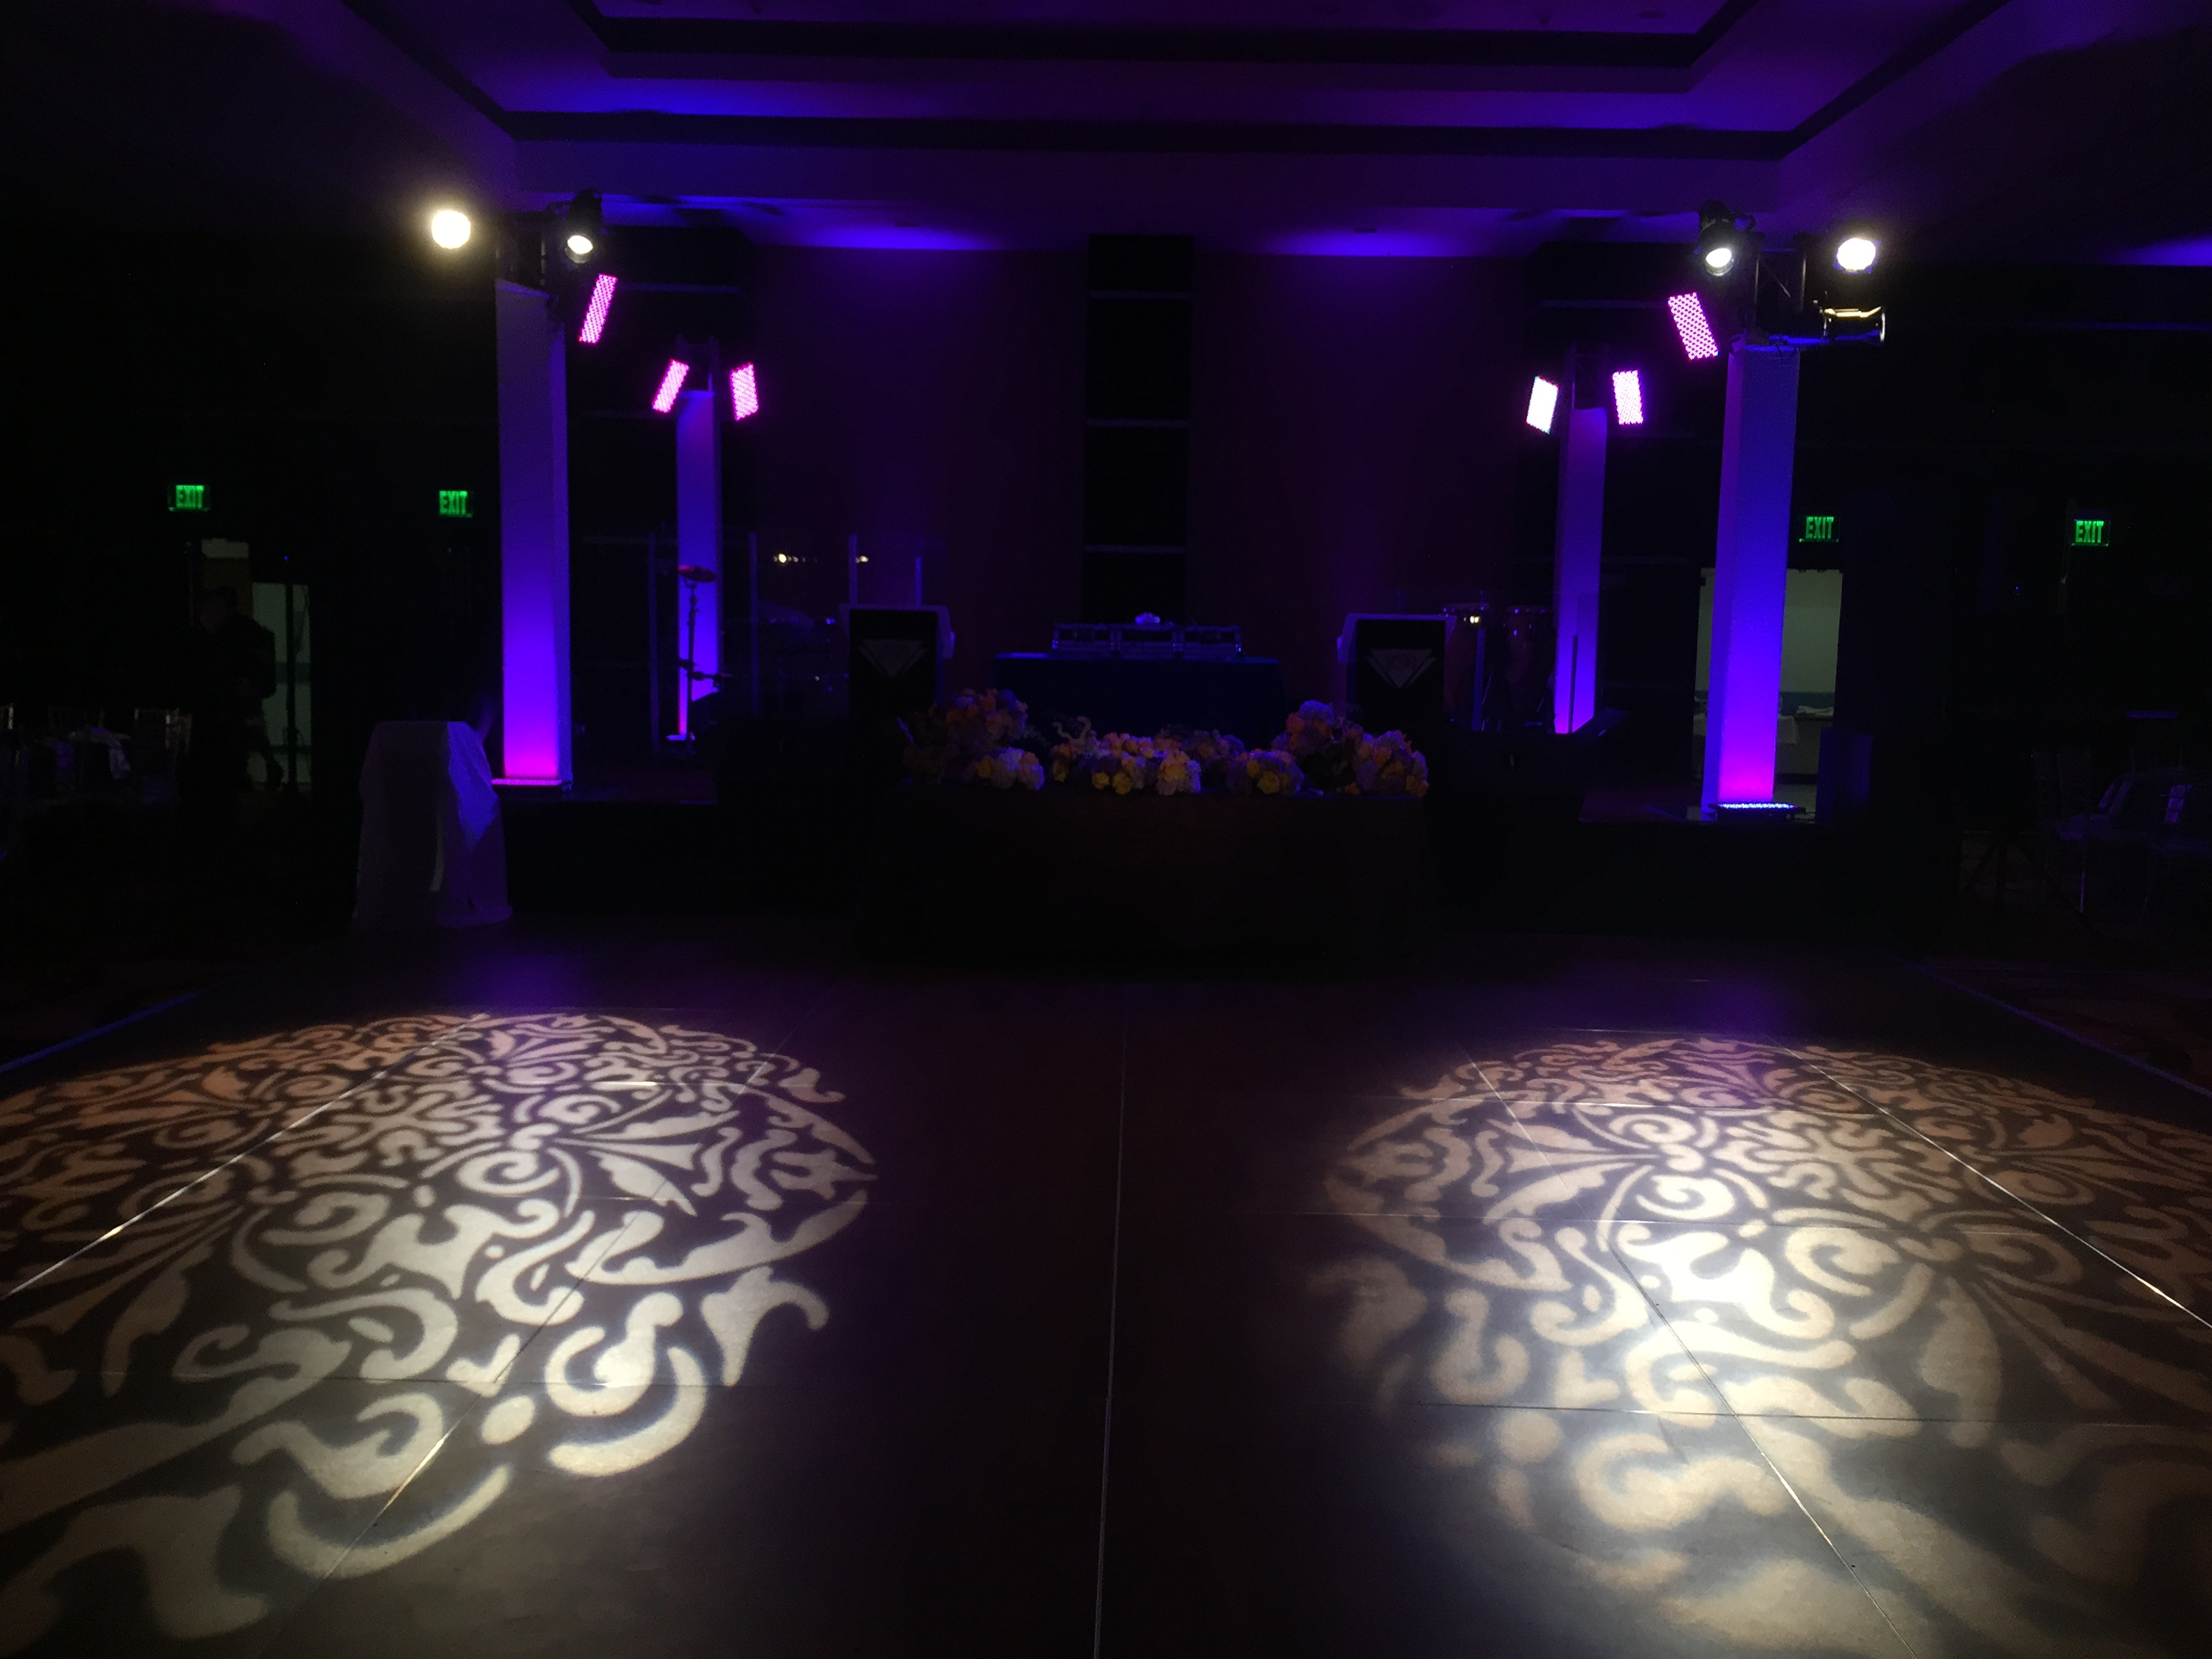 fantasy copy chandeliers gobo event r a dannydong difference the light washes sound uplights and services lights monogram custom